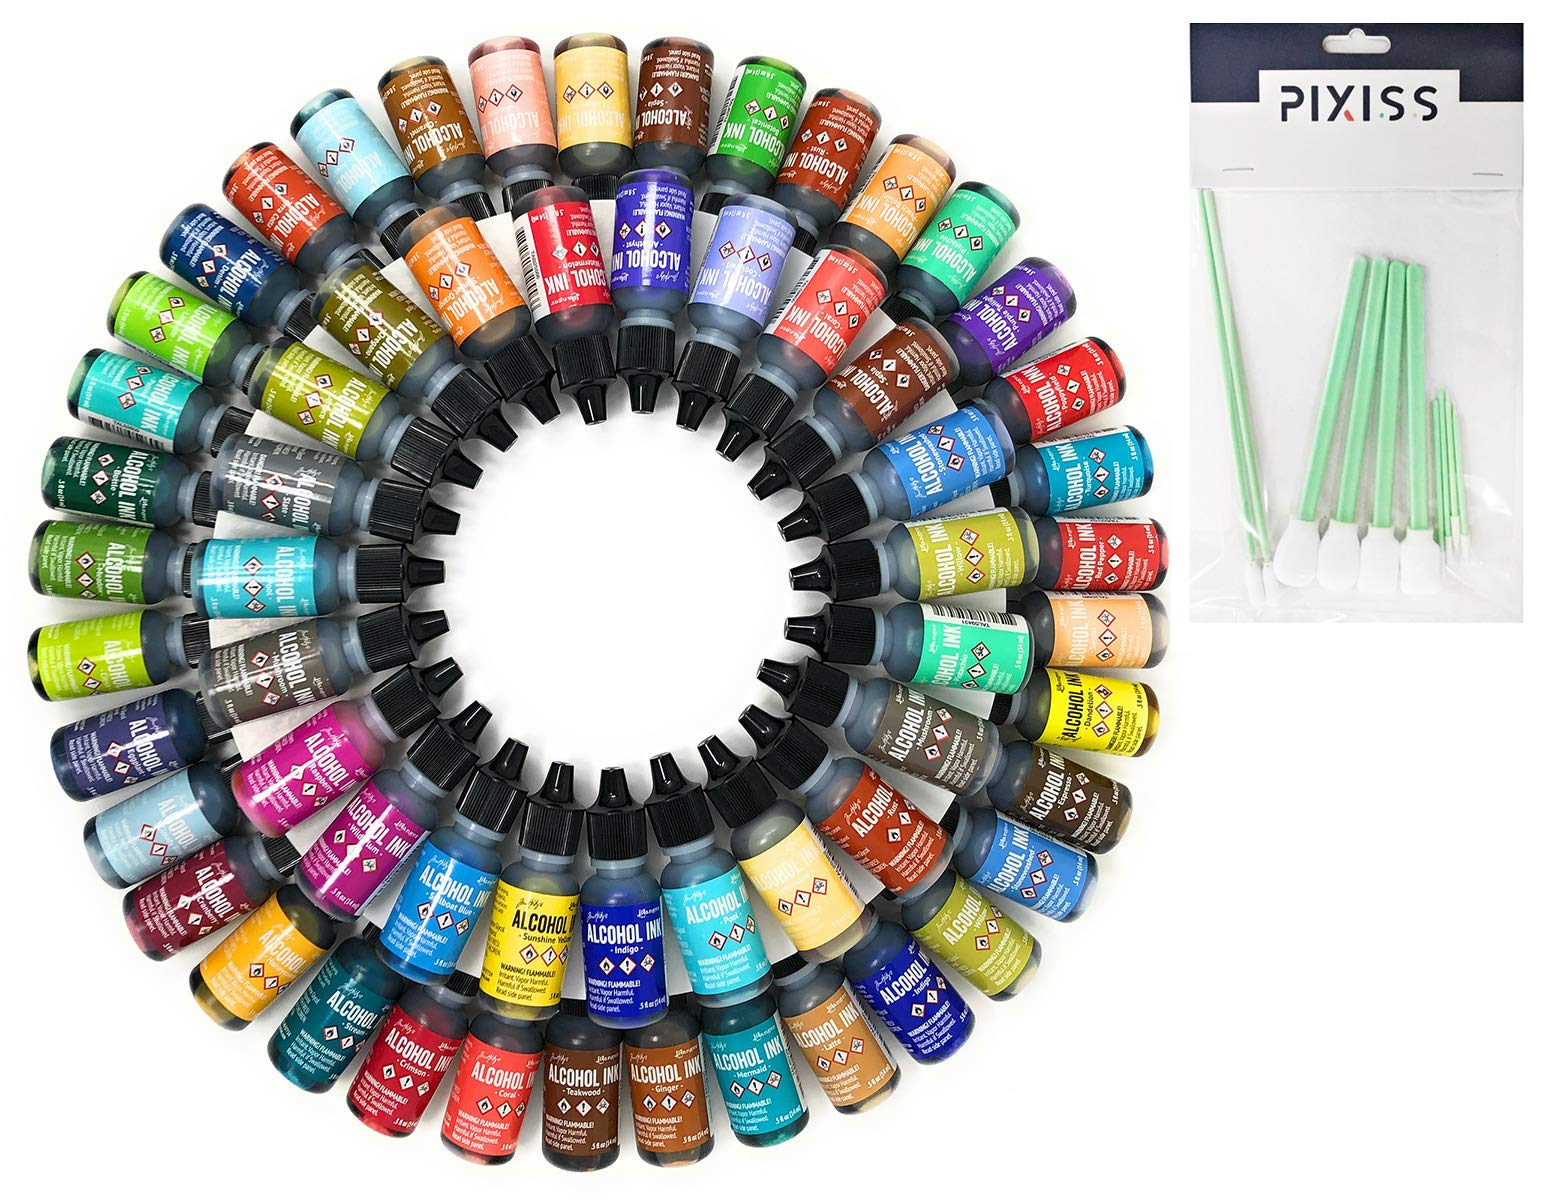 50x Tim Holtz Alcohol Ink .5oz Bottles (Assorted Colors, No Duplicates) and 10X Pixiss Ink Blending Tools by GrandProducts